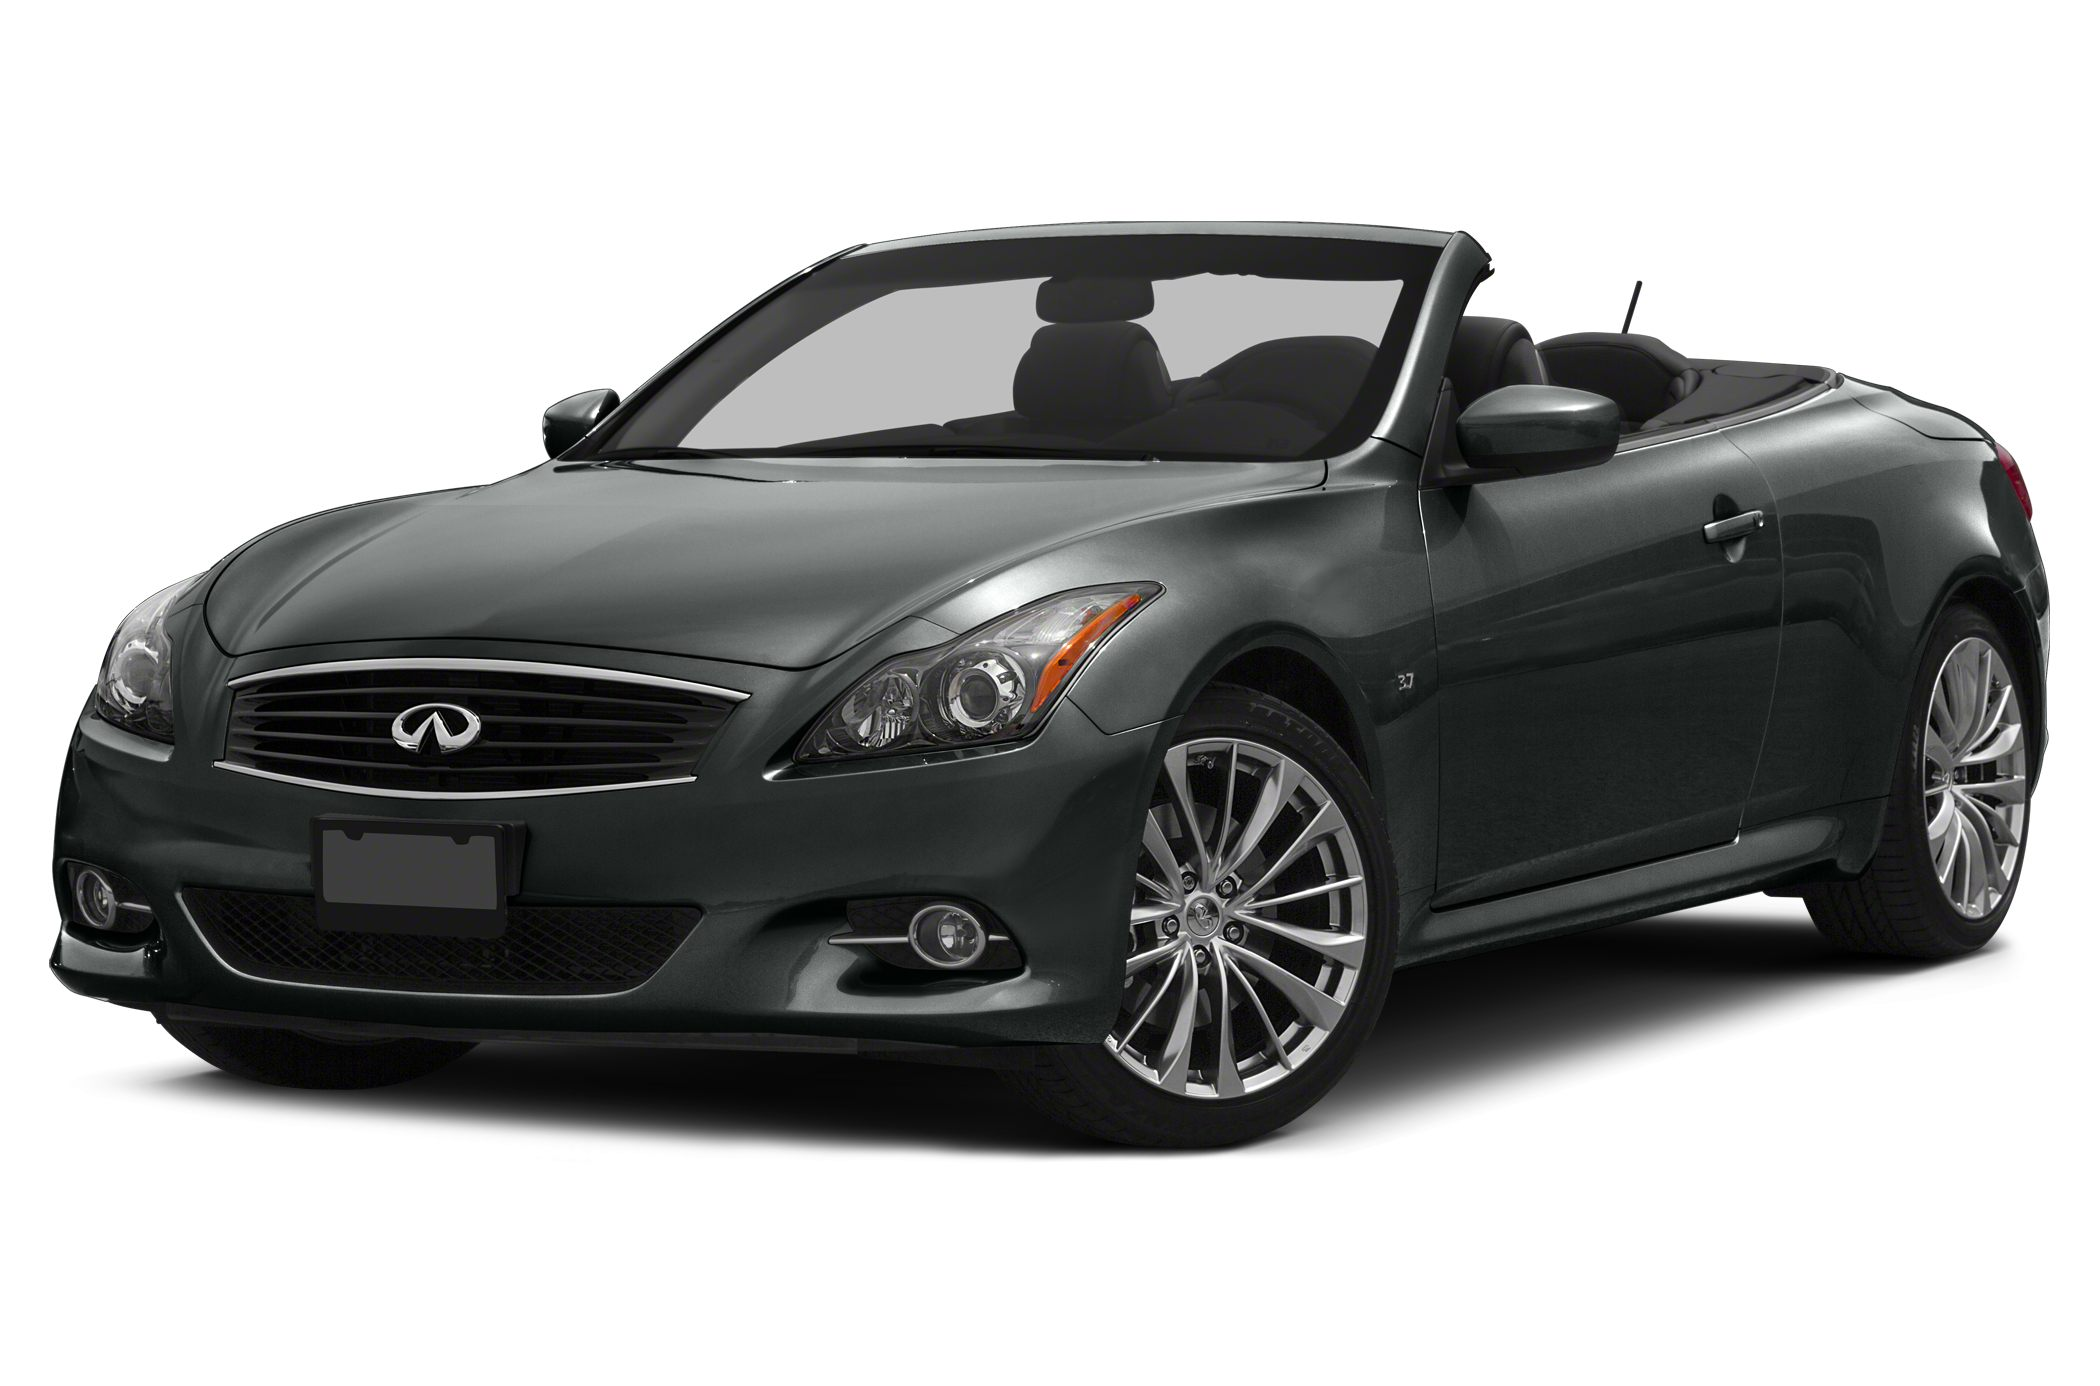 convertible be infinity this concept news built that won is t infiniti the